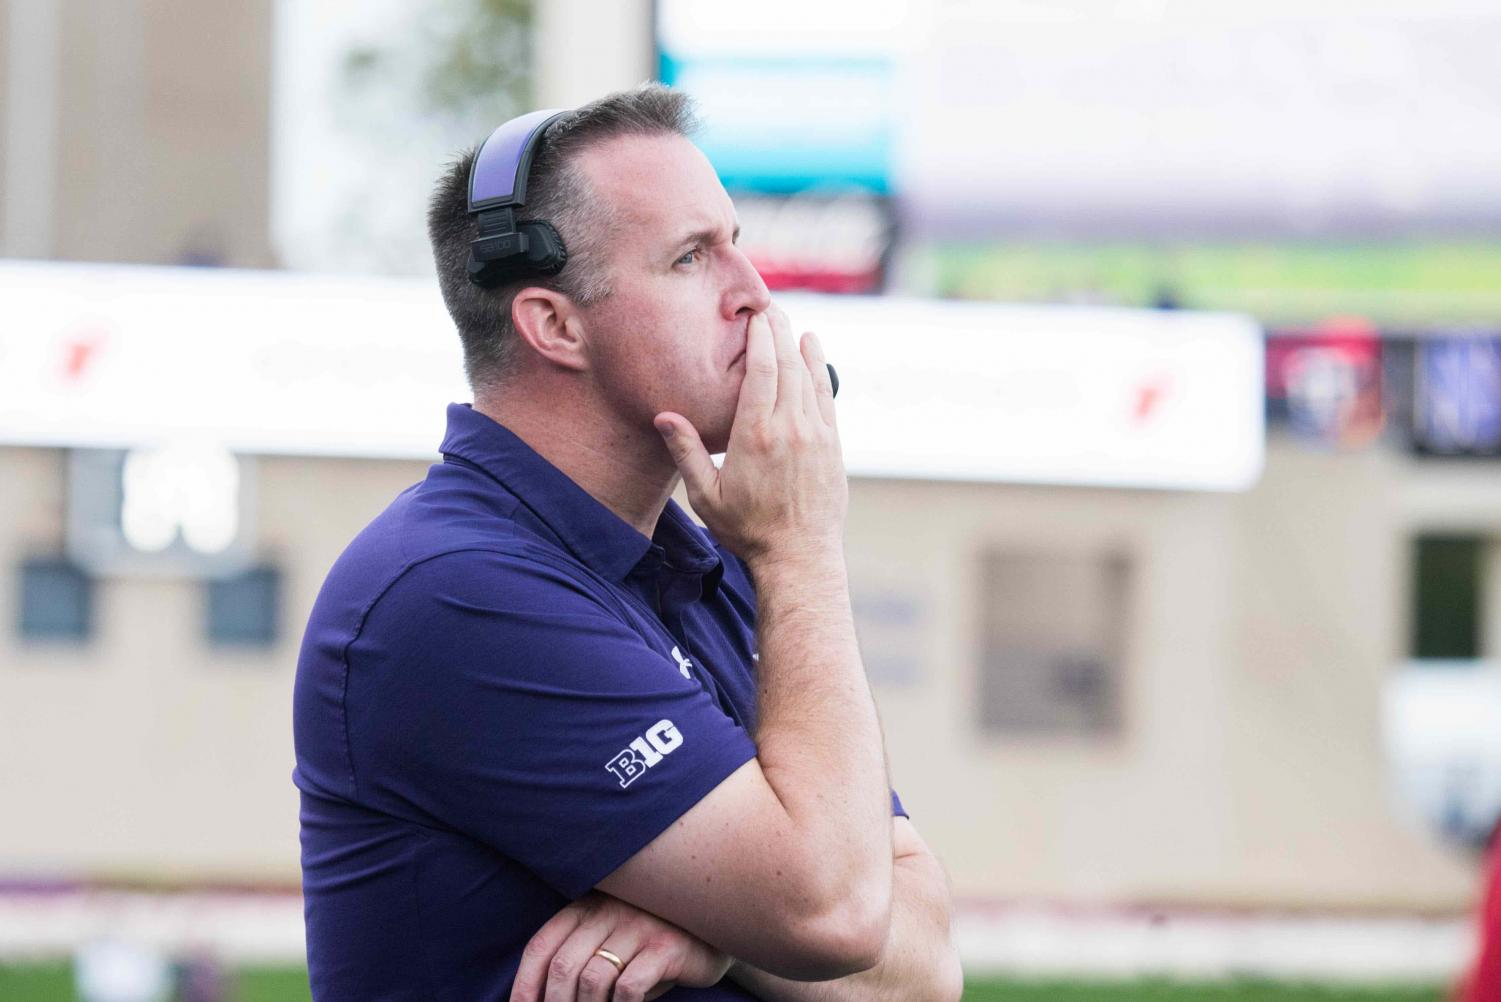 Pat Fitzgerald looks on from the sideline. The coach said windy conditions at Ryan Field played into his decision-making Saturday.